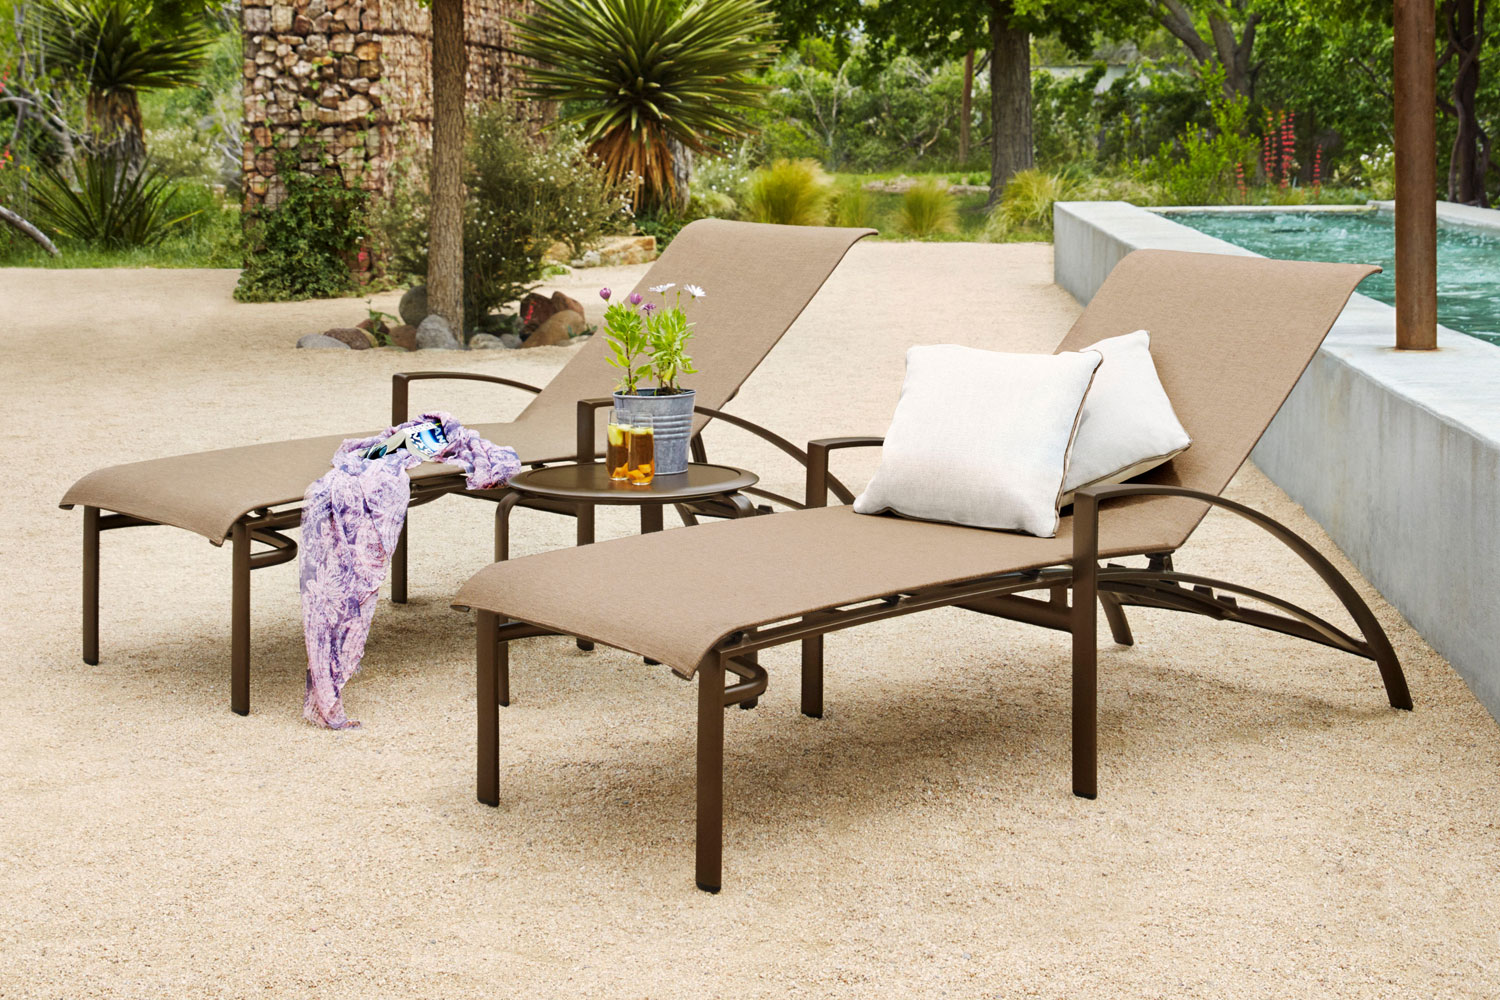 Outdoor and patio furniture down to earth living for Agio heritage chaise lounge